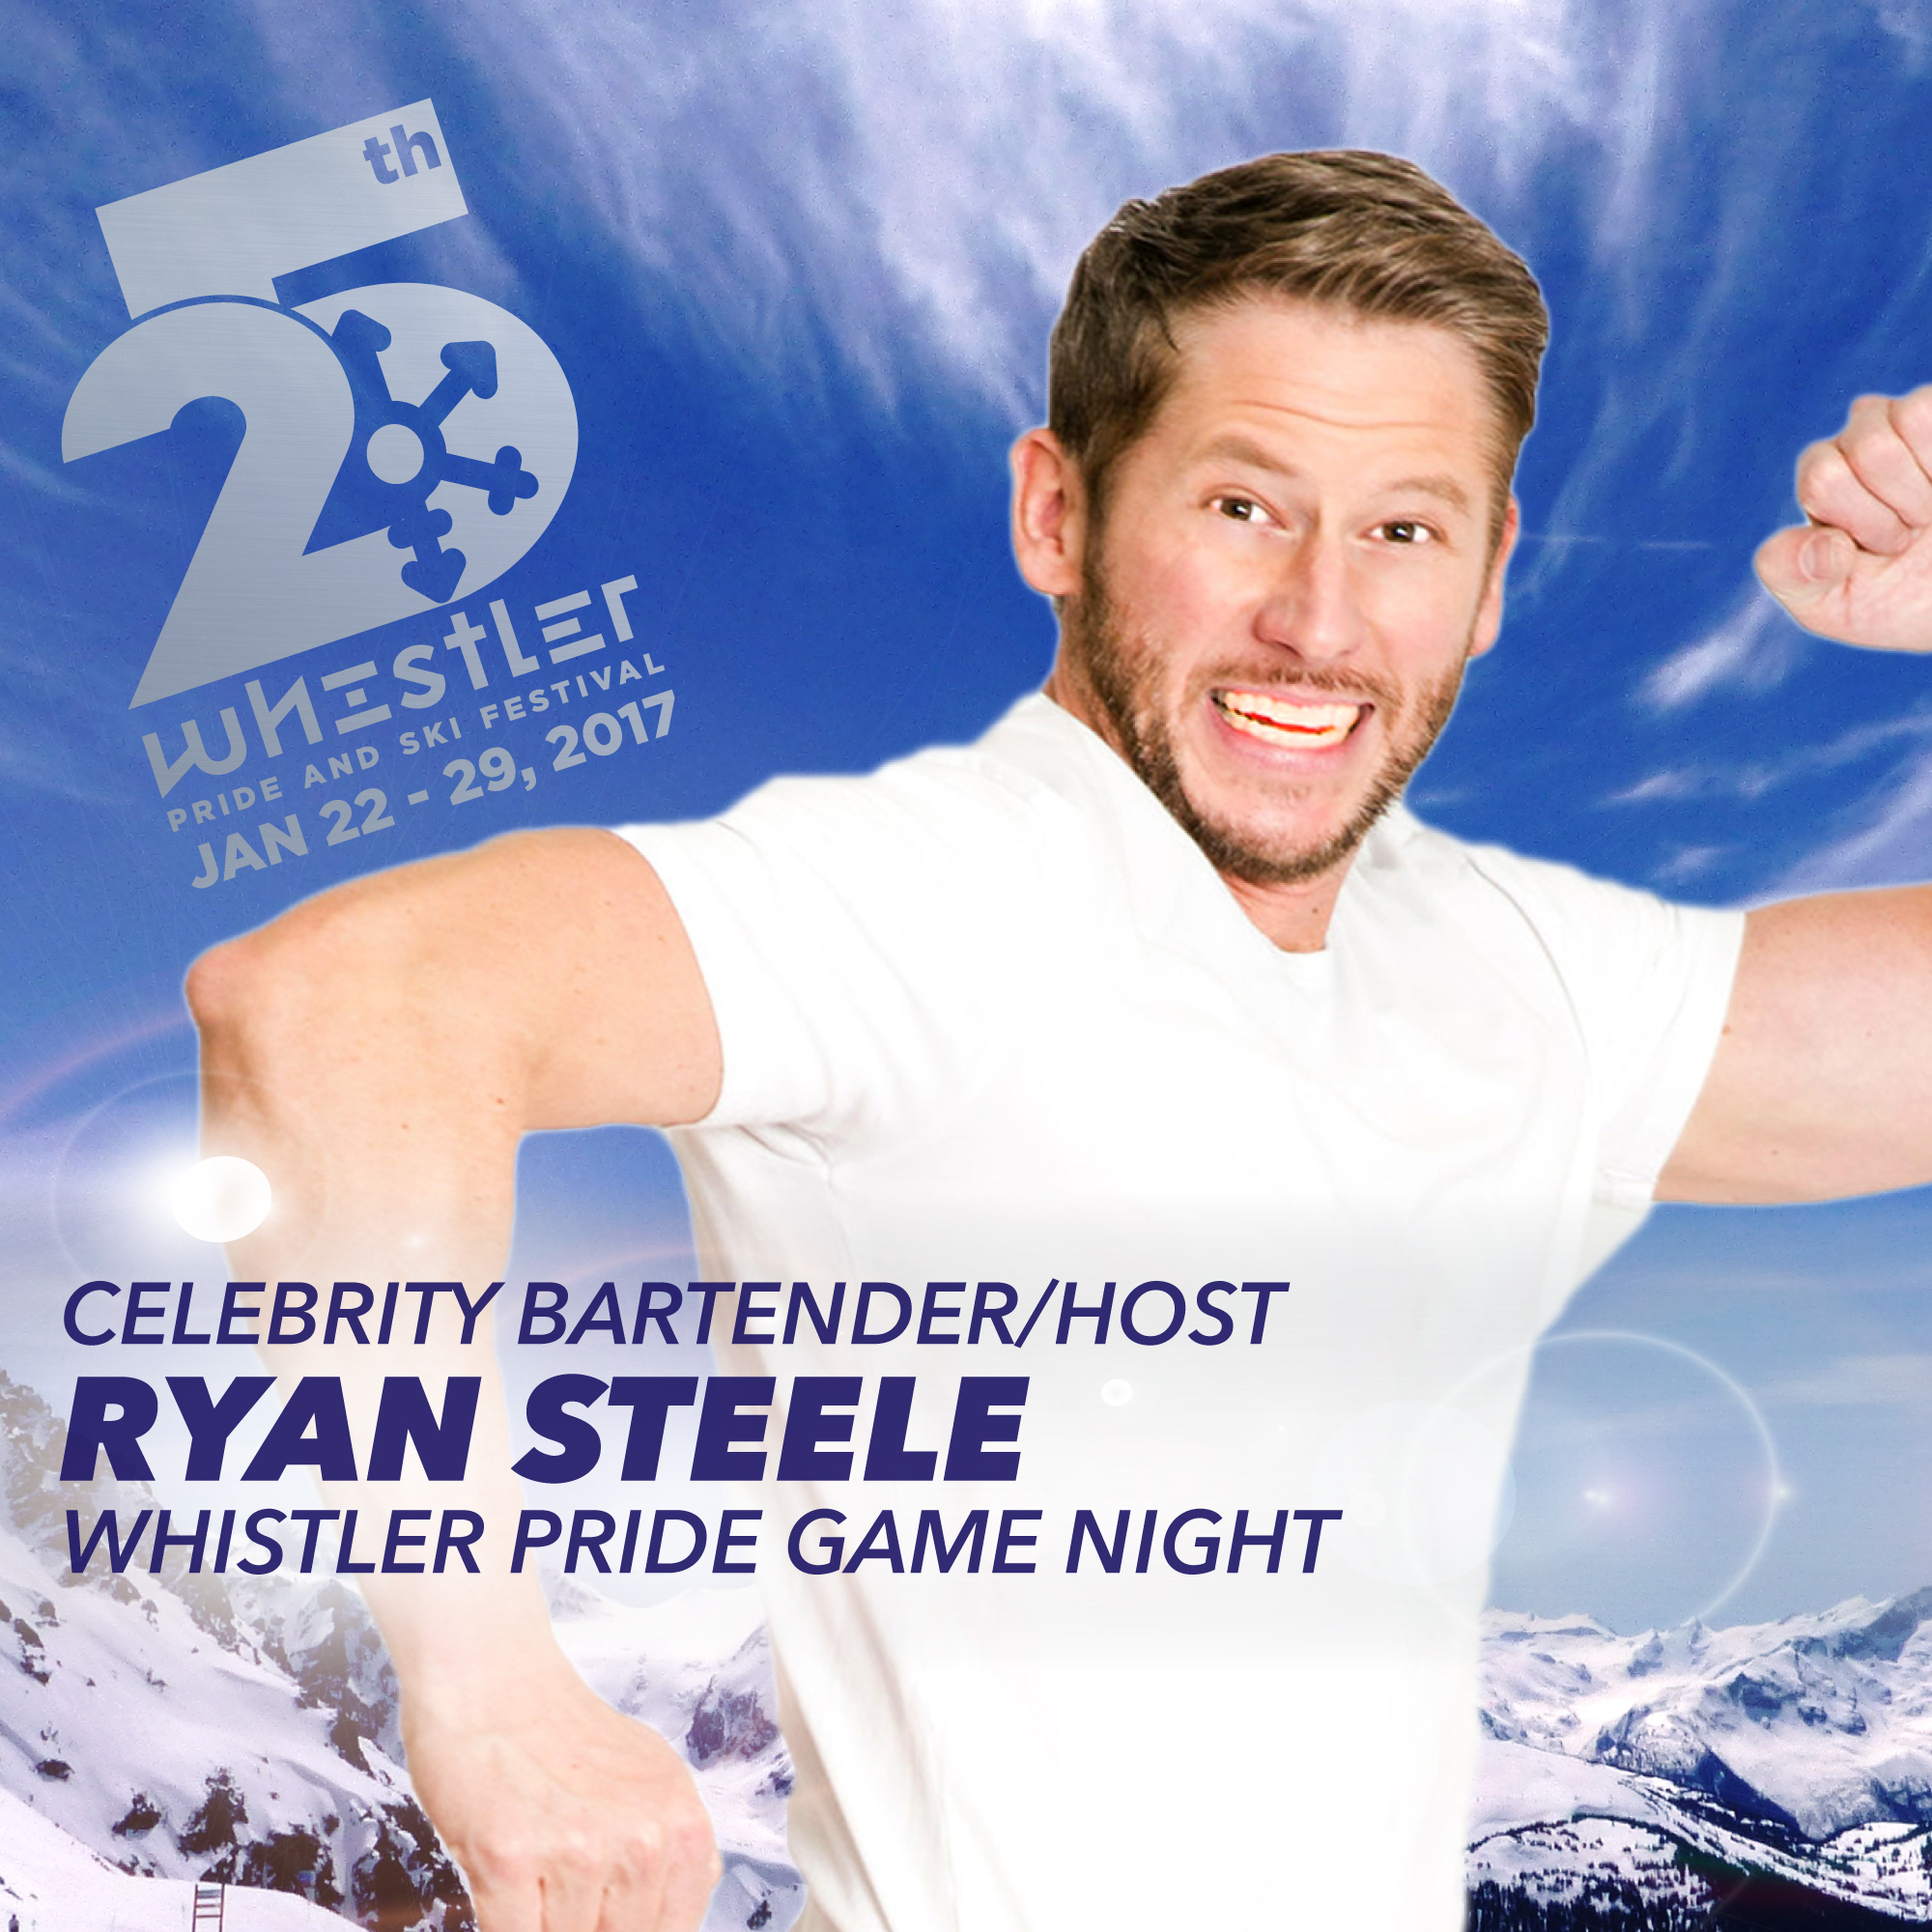 Ryan Steele Celebrity bartender and Game Host at Whistler Pride and Ski Festival